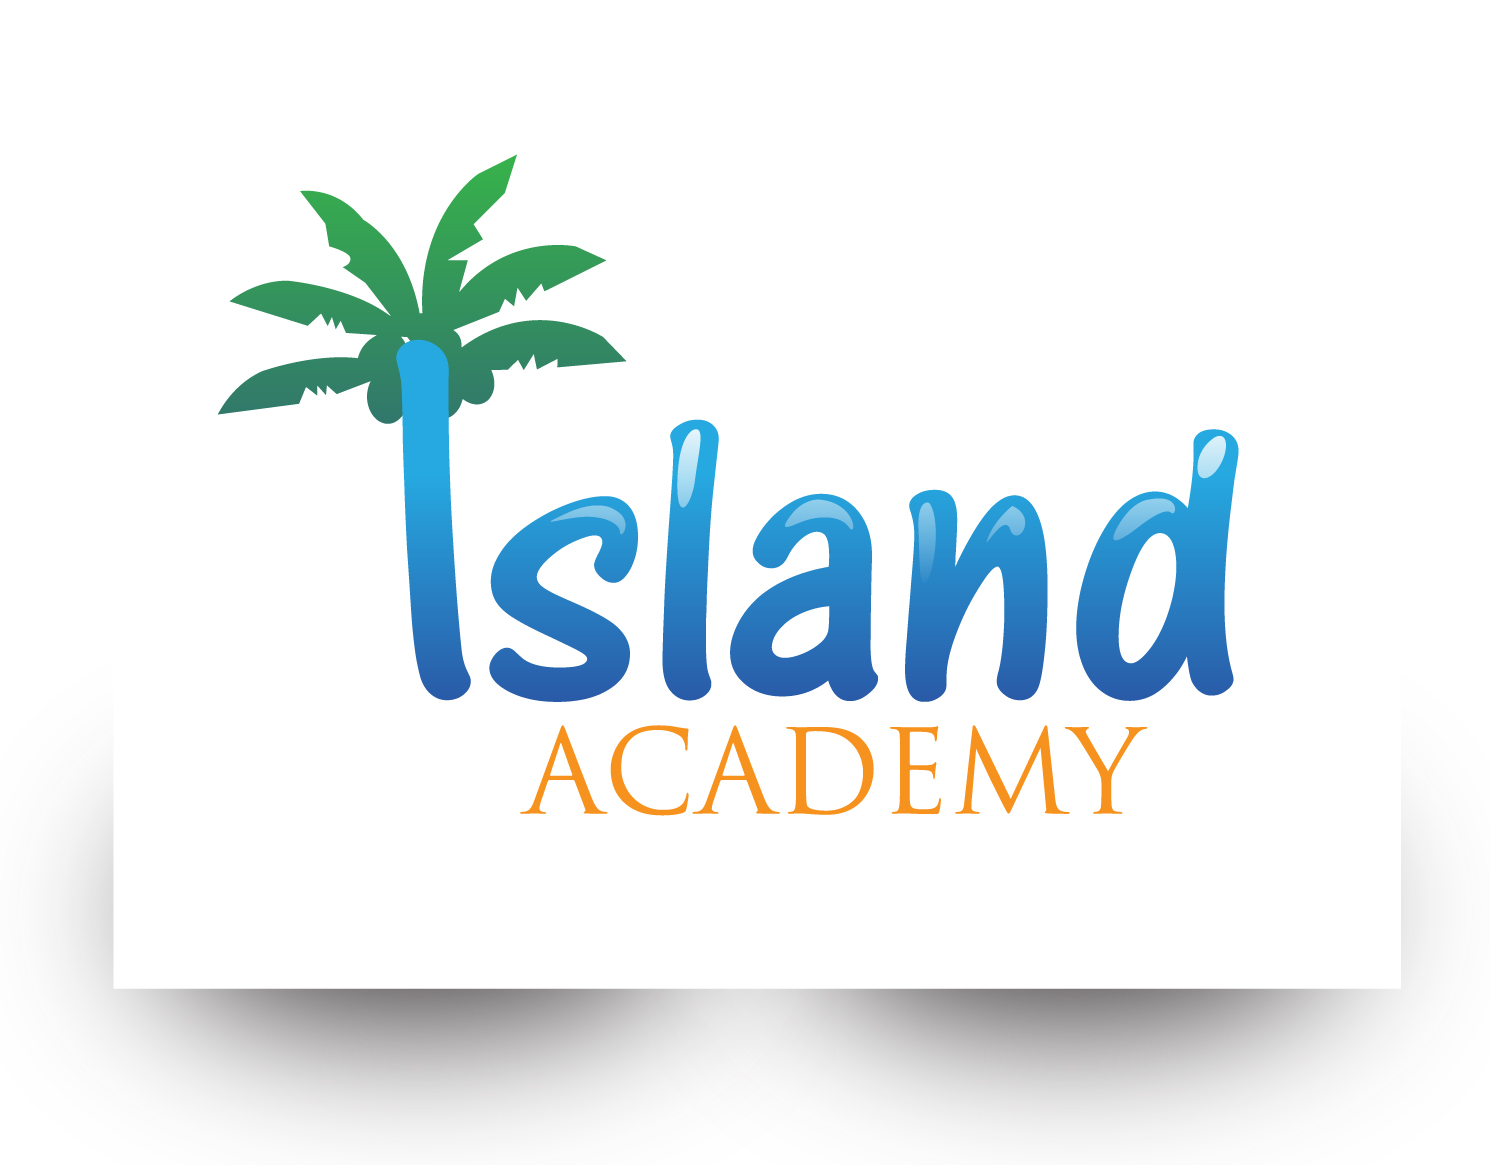 Logo Design by demang - Entry No. 1 in the Logo Design Contest New Logo Design for Island Academy.